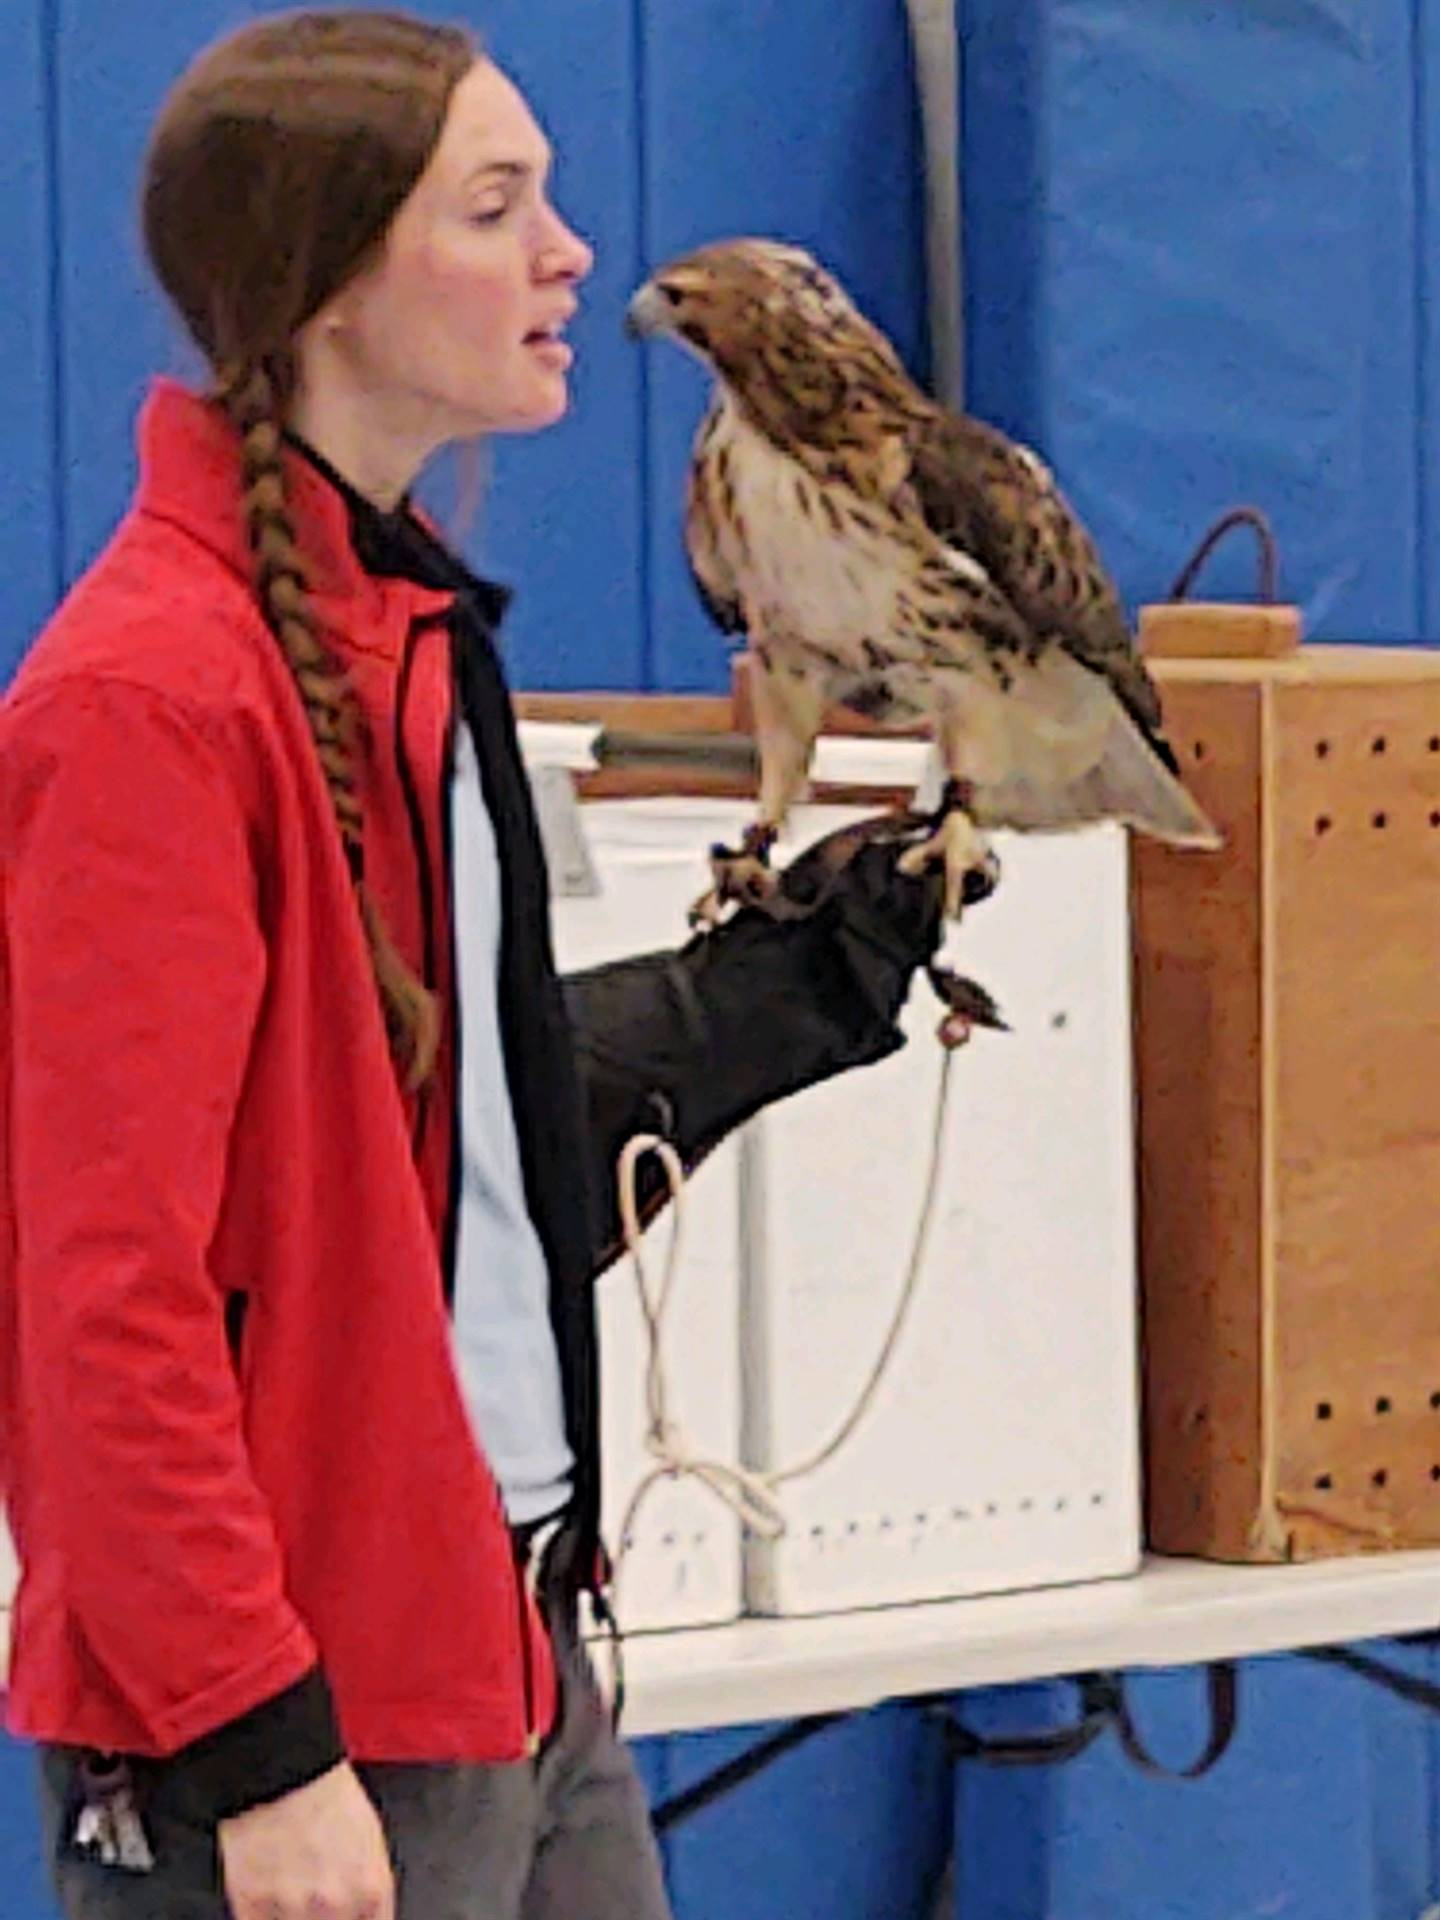 A Red Tailed Hawk from the OH Bird Sanctuary